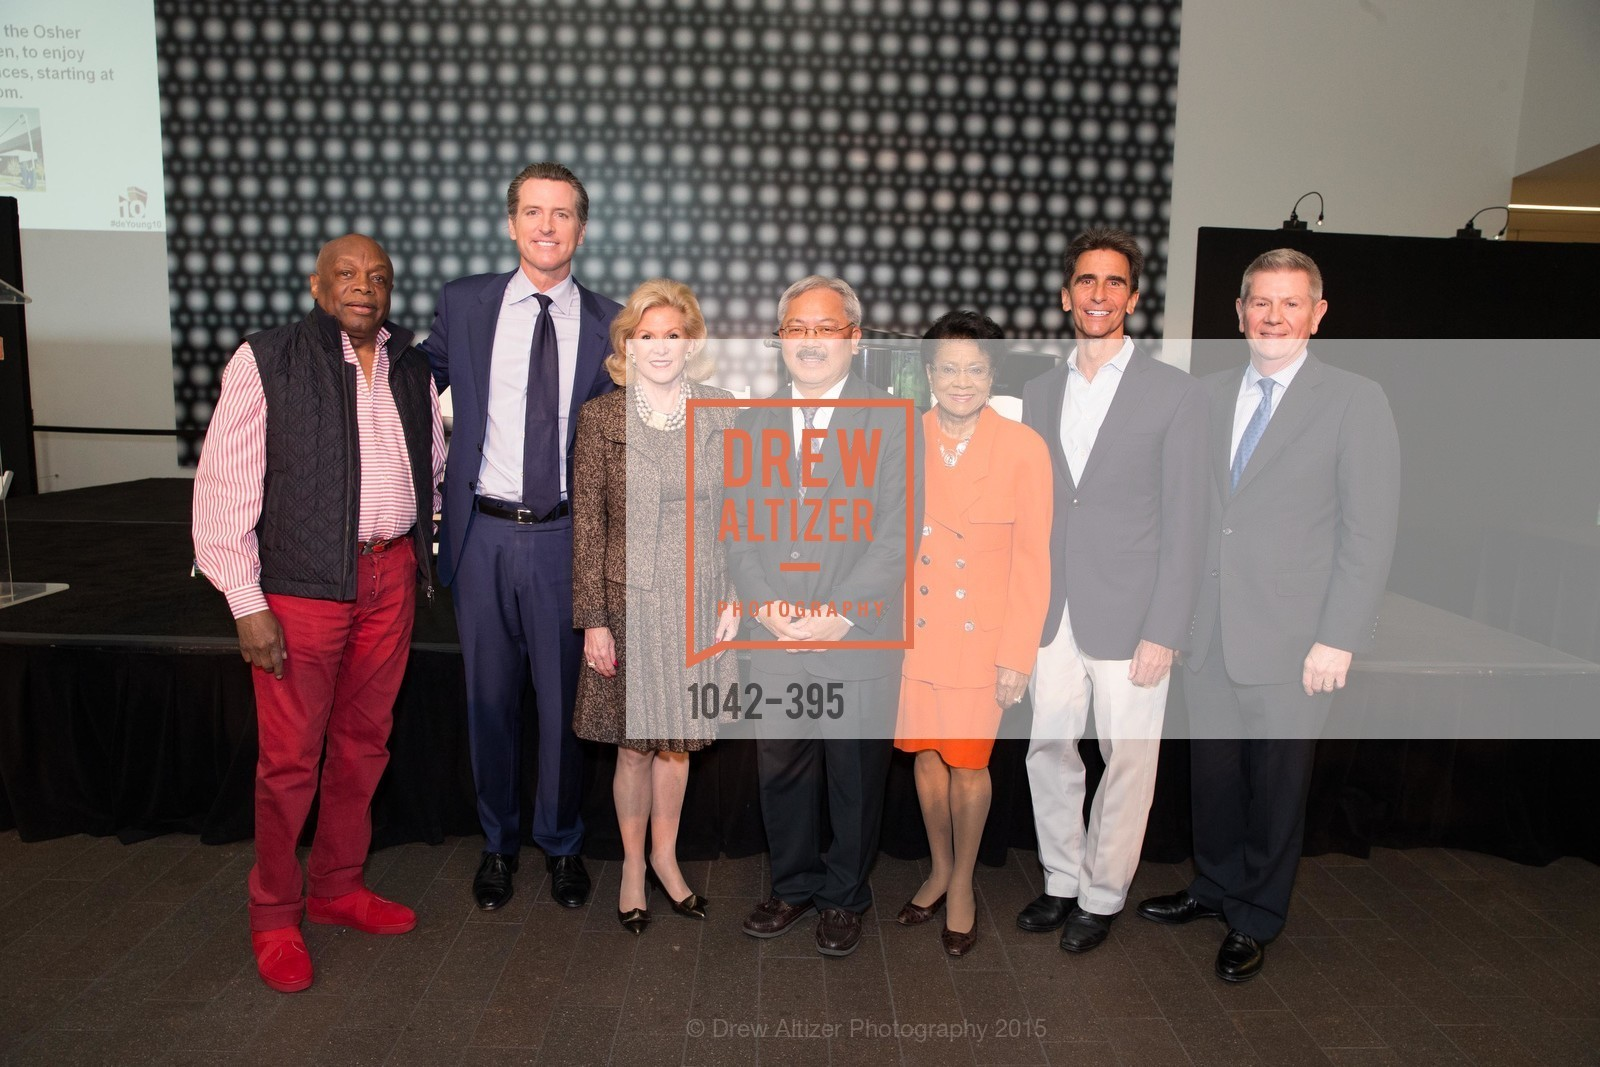 Willie Brown, Gavin Newsom, Dede Wilsey, Mayor Ed Lee, Belva Davis, Mark Leno, Richard Benefield, 10th Anniversary of the new de Young: Community Day, de Young Museum, October 17th, 2015,Drew Altizer, Drew Altizer Photography, full-service agency, private events, San Francisco photographer, photographer california